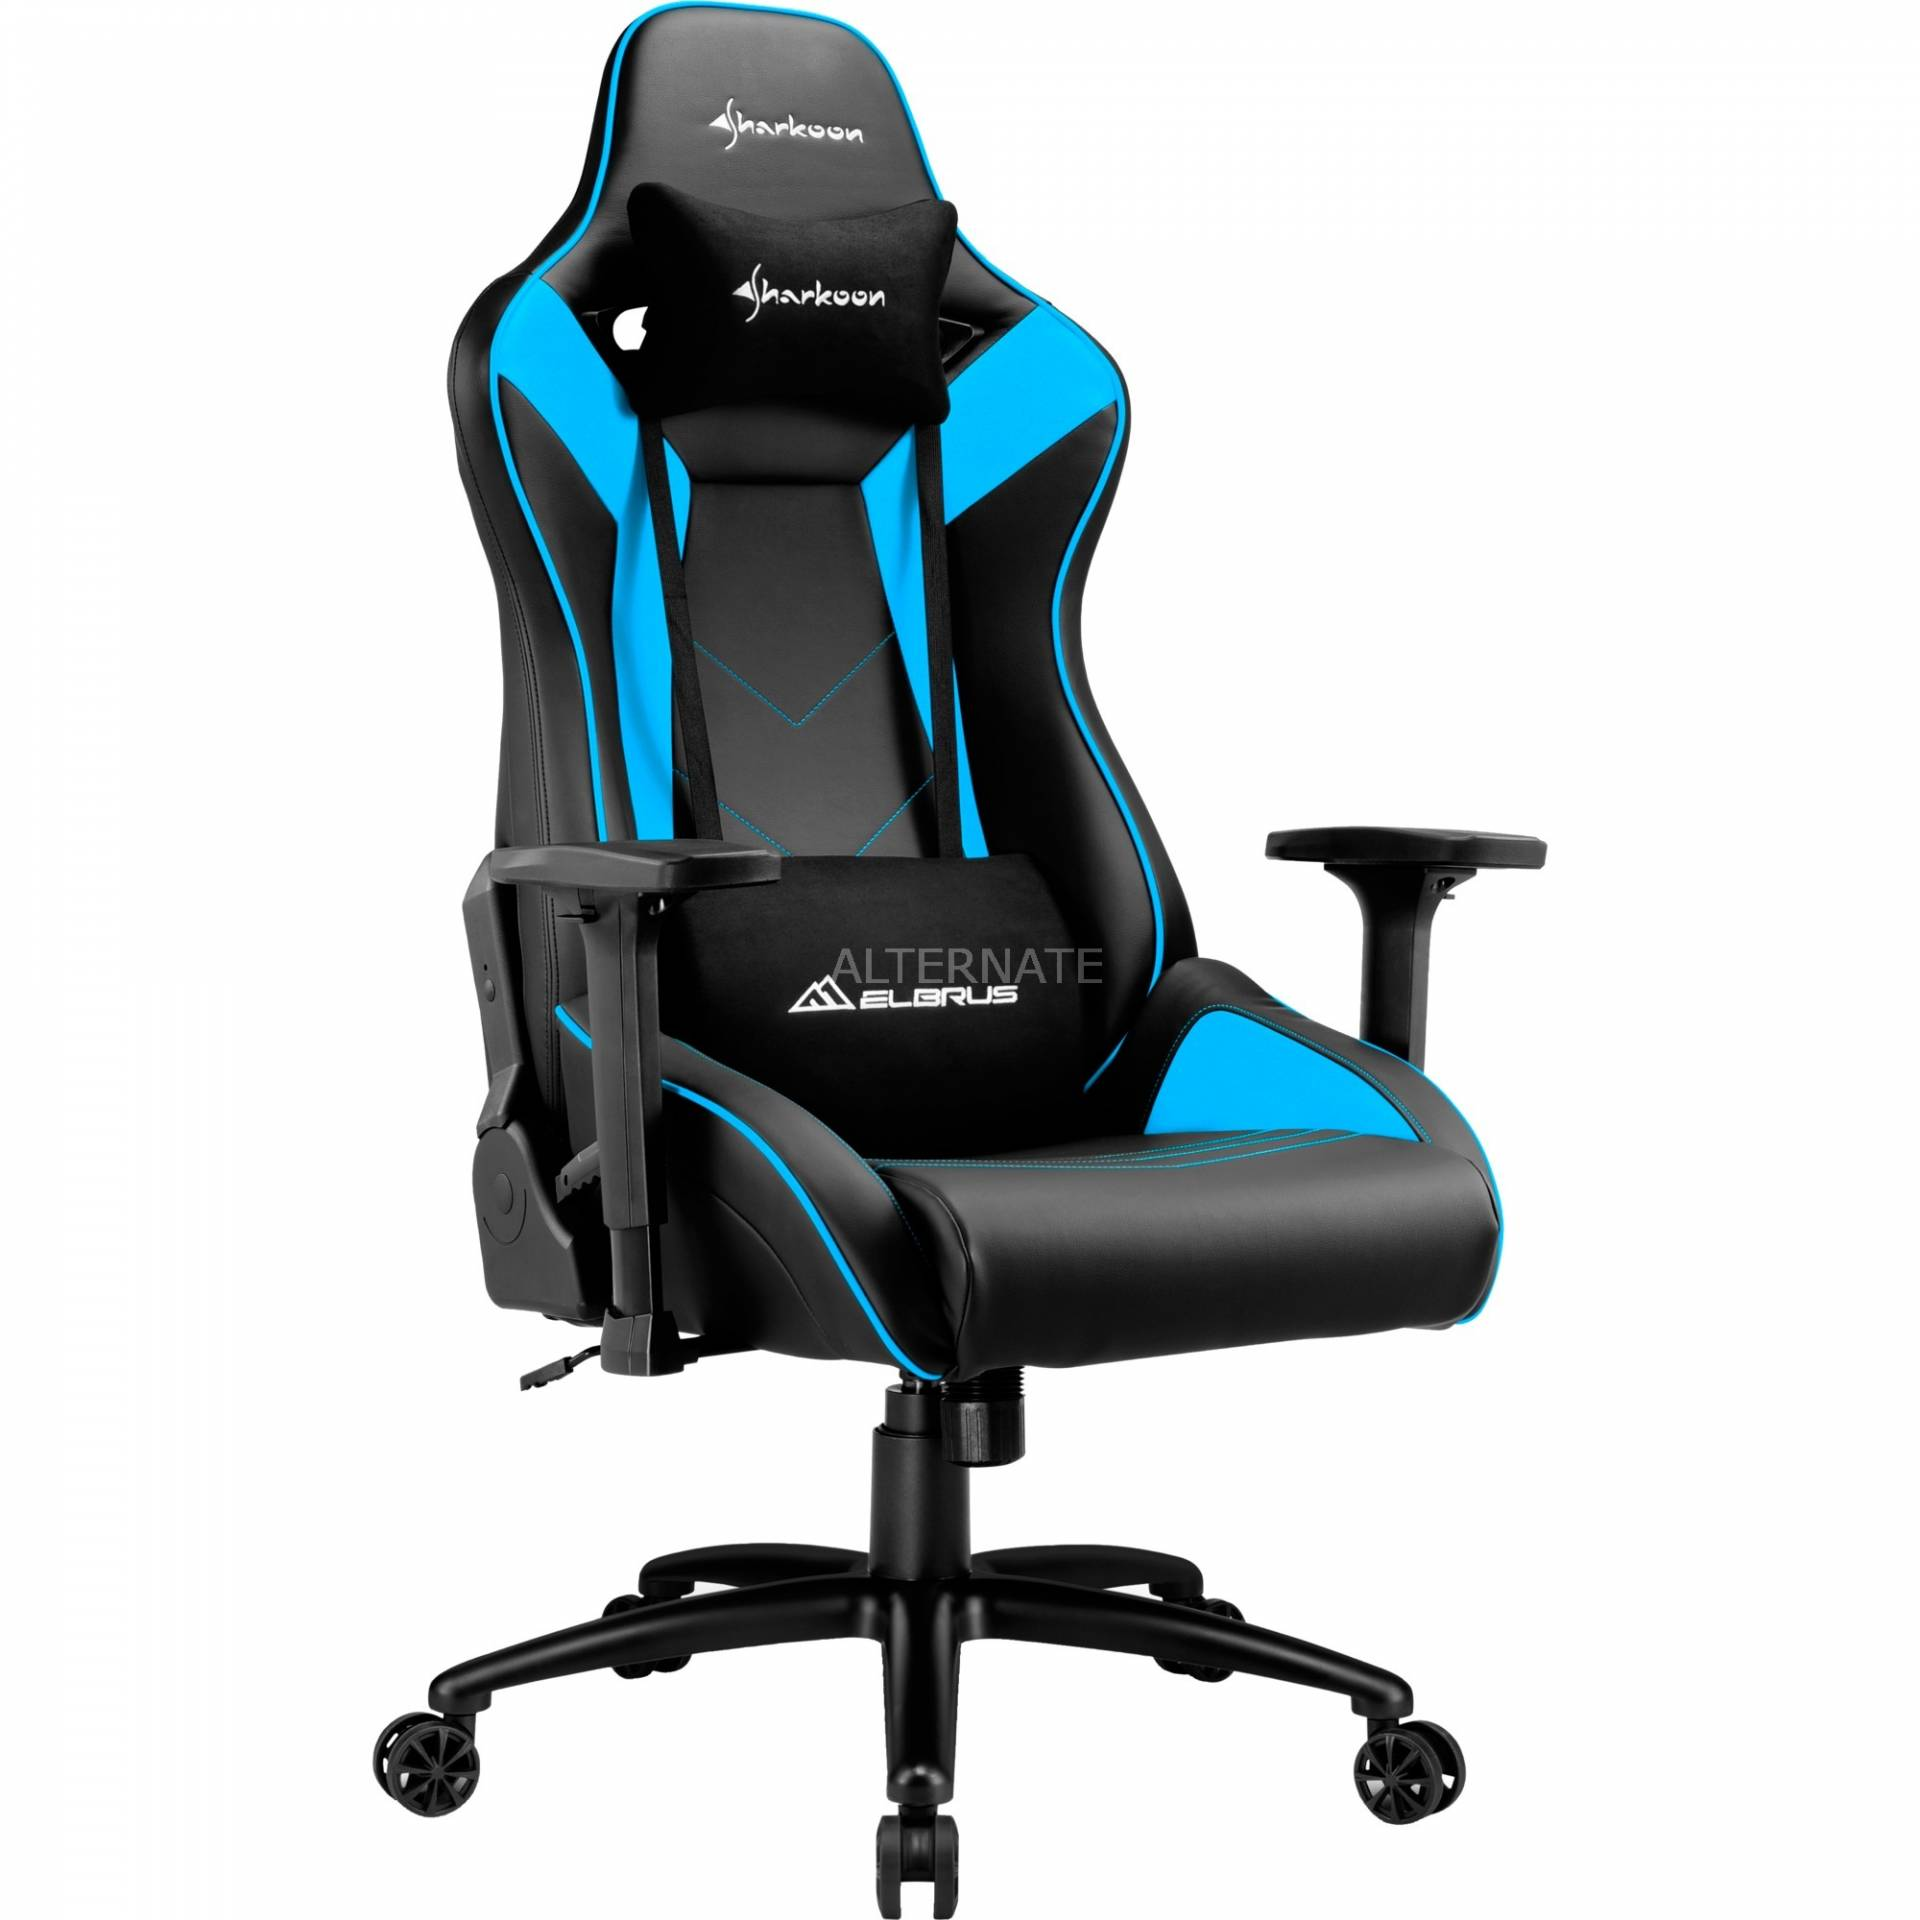 ELBRUS 3 Gaming Chair, Gaming-Stuhl von Sharkoon